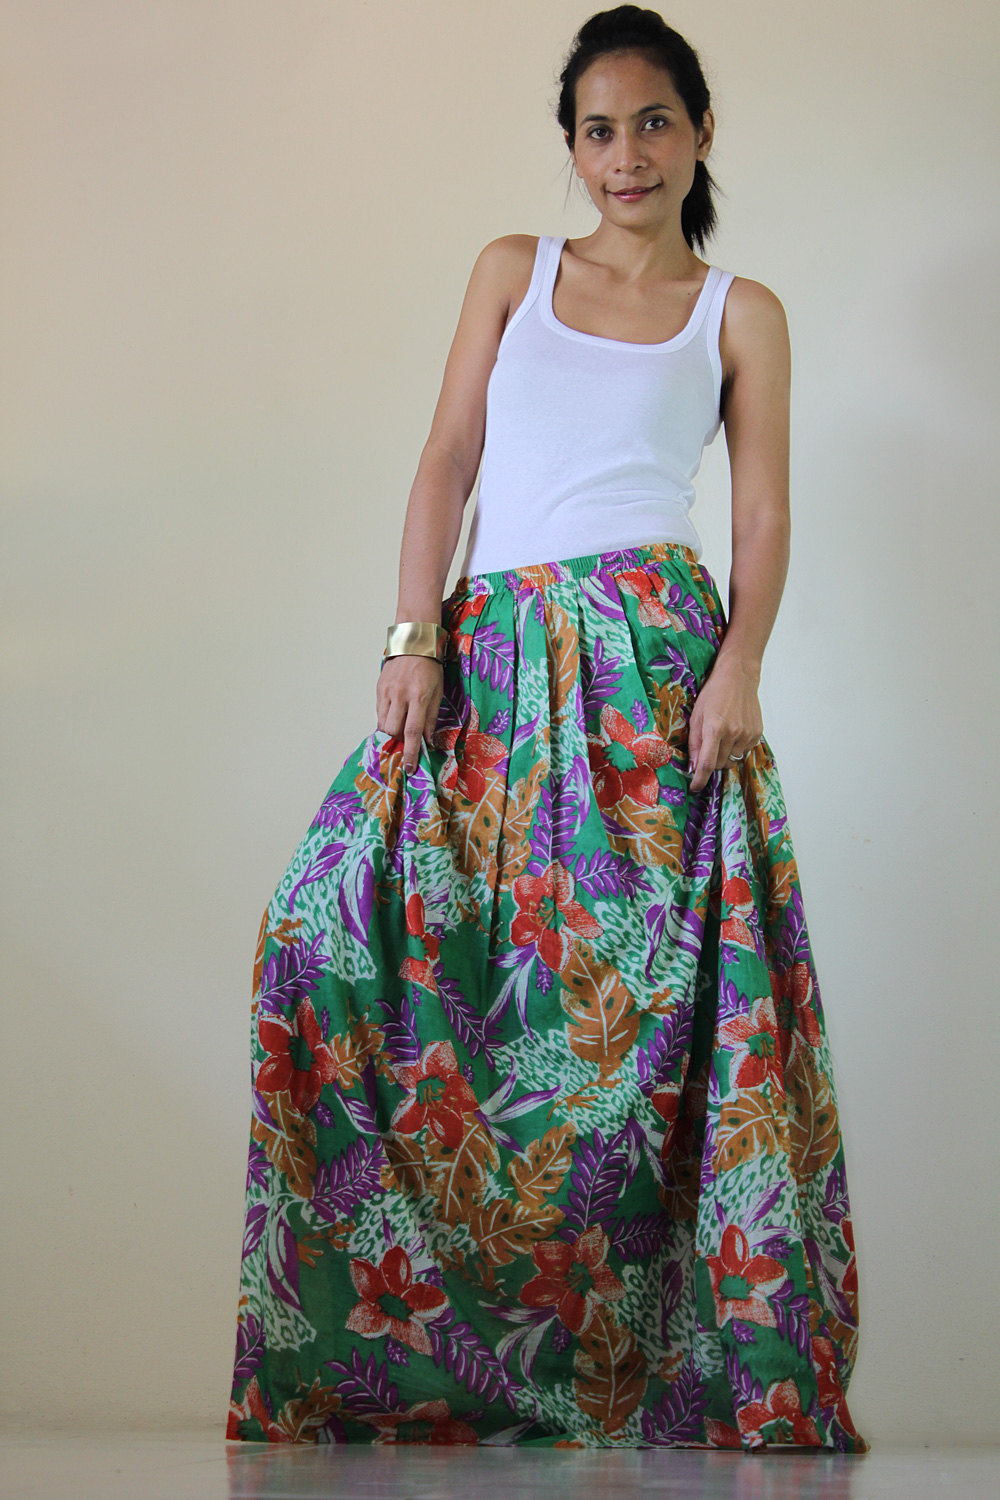 Floral Maxi Skirt : Feel Good Collection II on Luulla